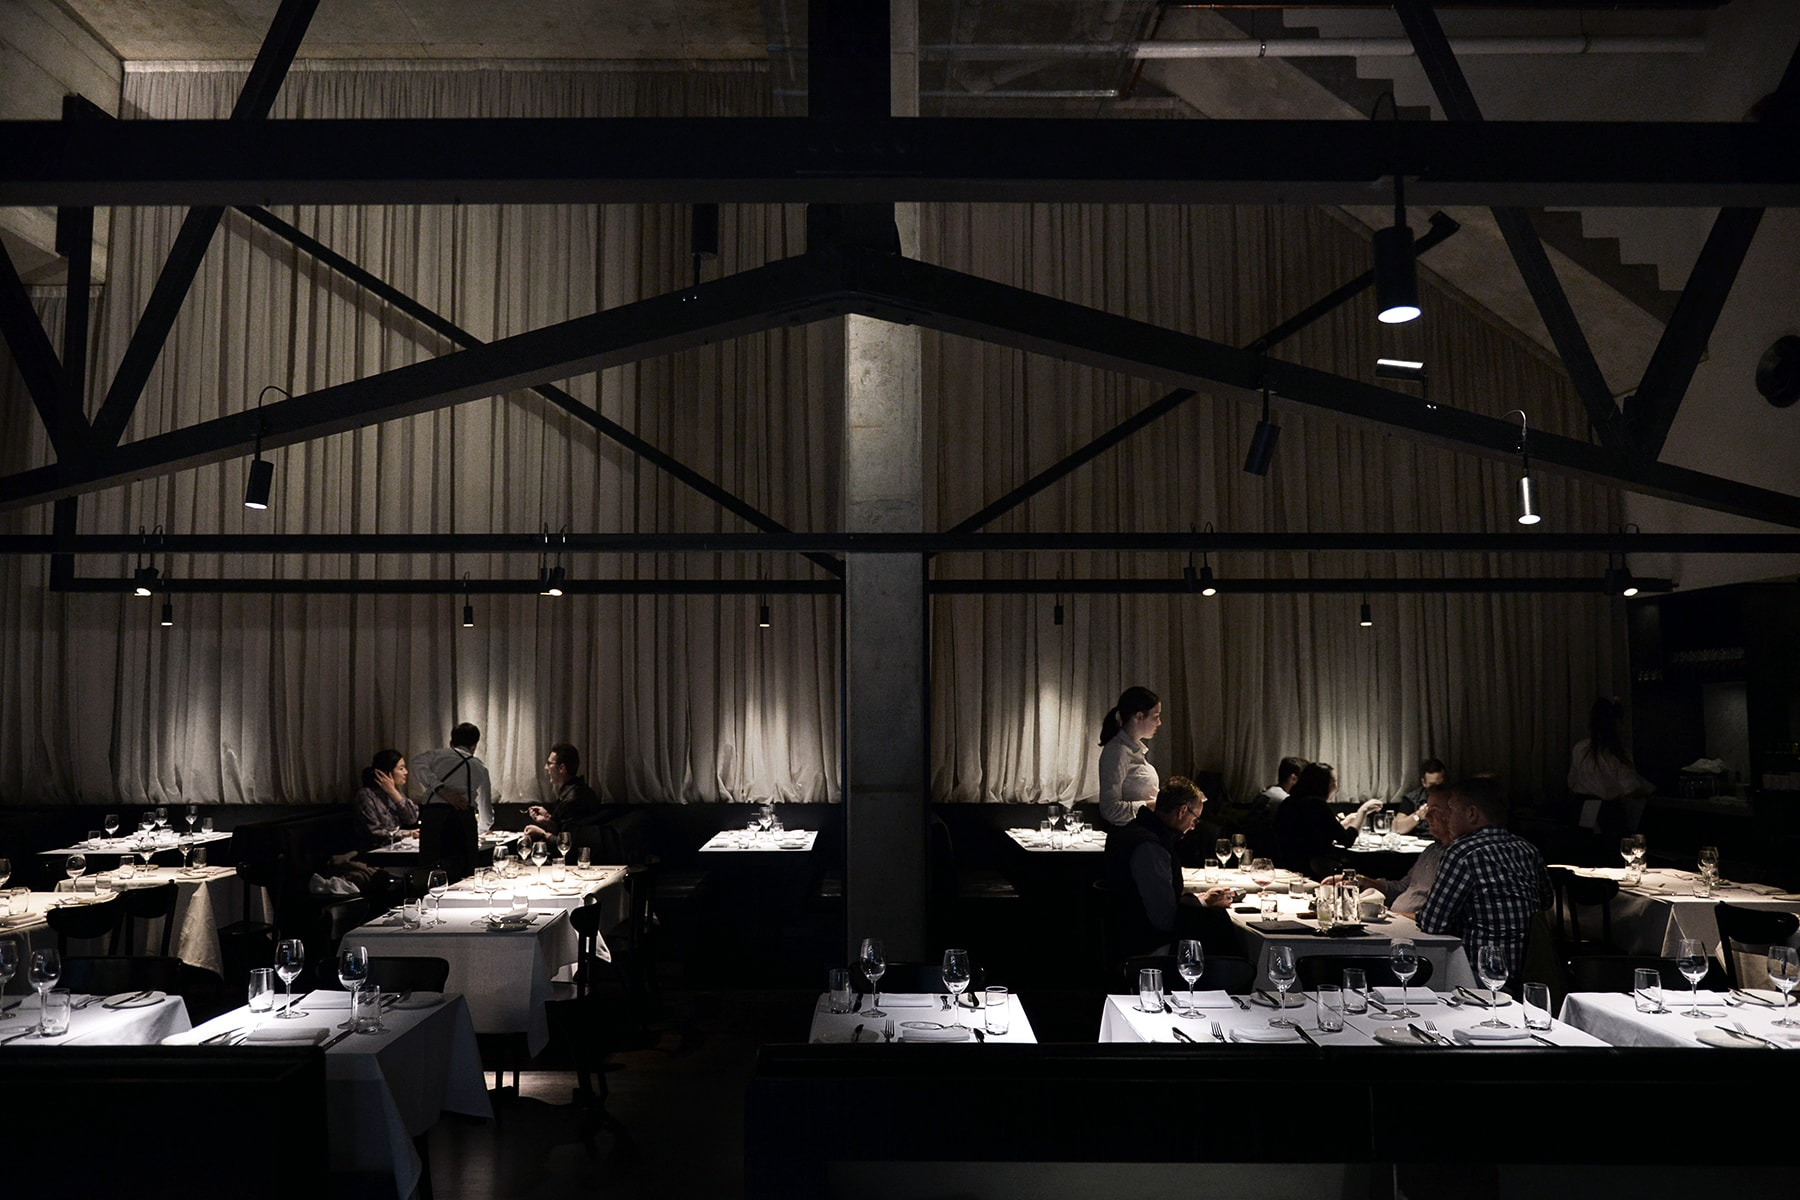 Soraa the world leader in GaN on GaN™ LED technology announced that its LED l&s have been installed at the Shadow Wine Bar in Perth Western Australia. & SORAA